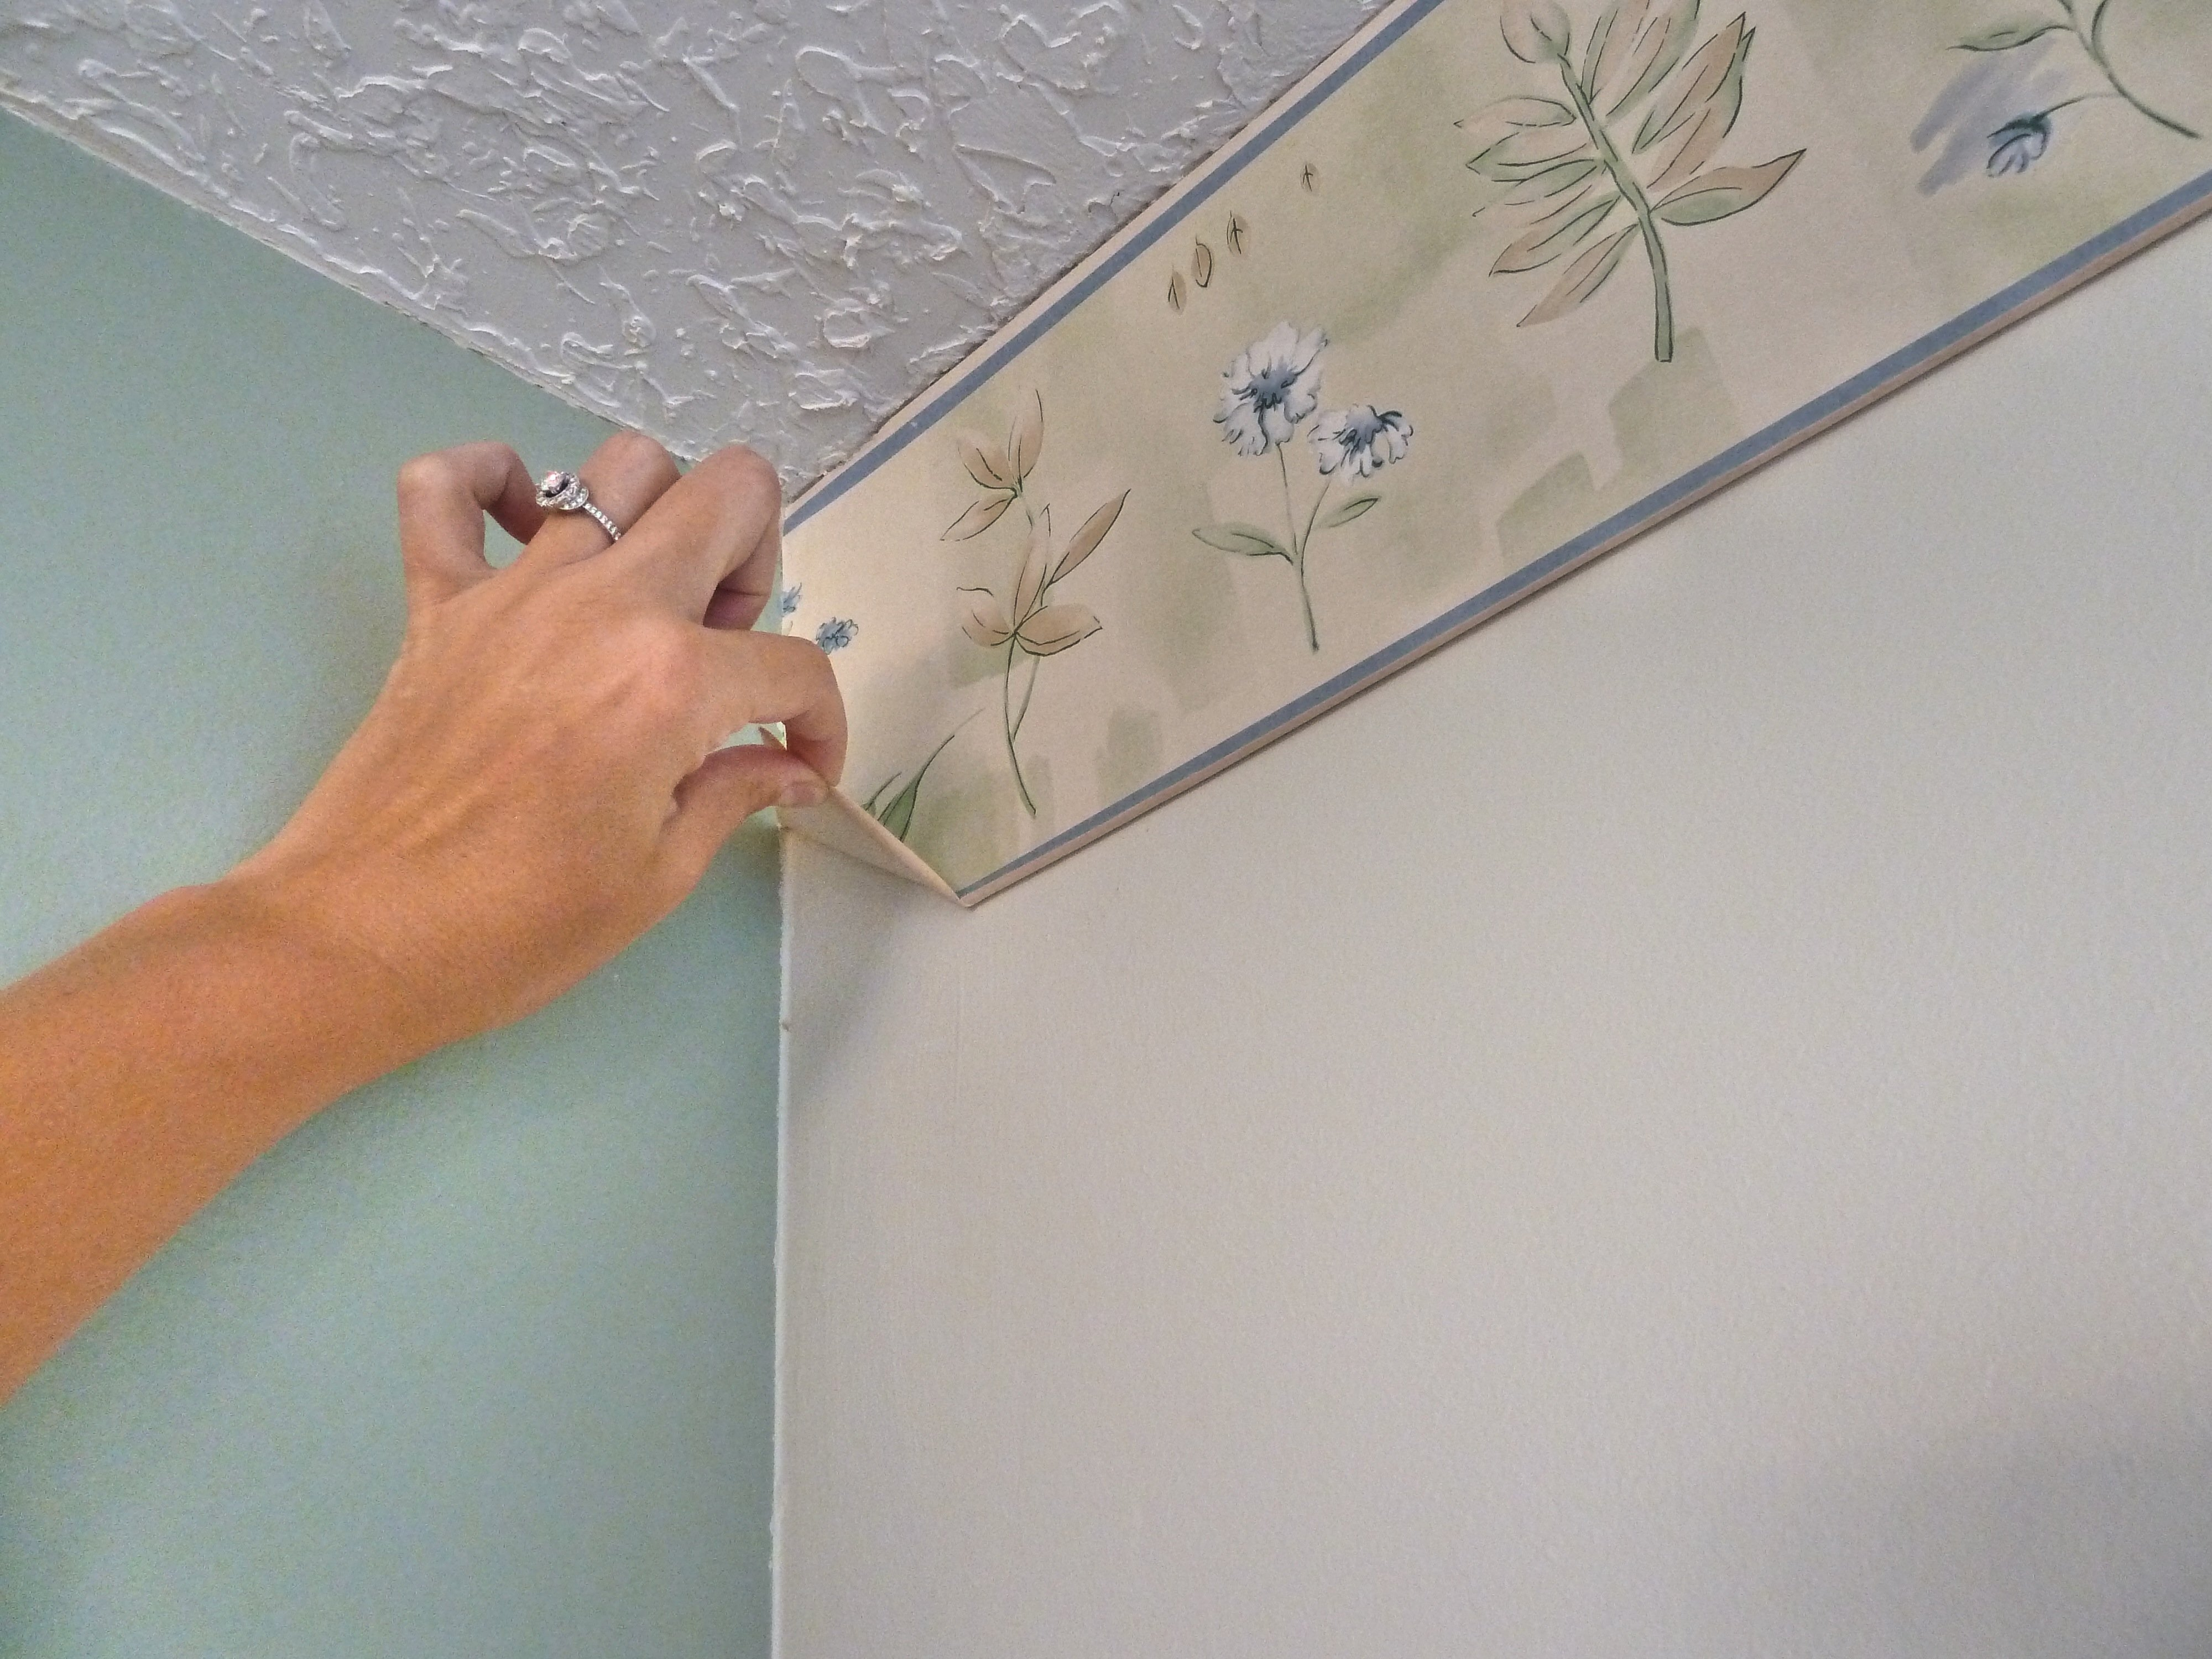 Removing Wallpaper With Fabric Softener Offers Useful Innovation For 4000x3000